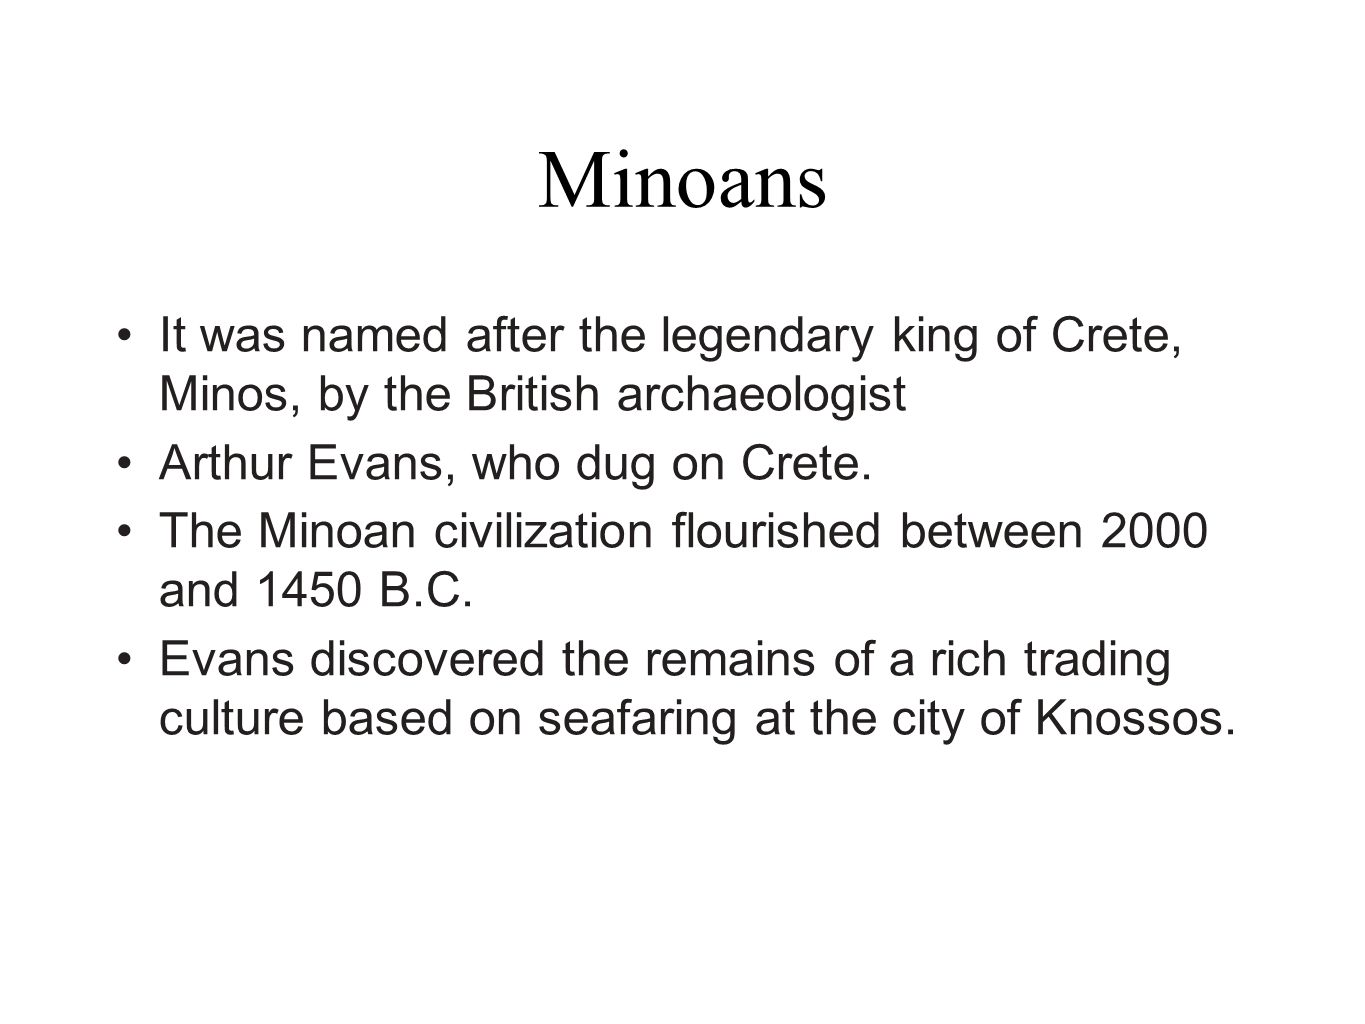 MinoansIt was named after the legendary king of Crete, Minos, by the British archaeologist. Arthur Evans, who dug on Crete.